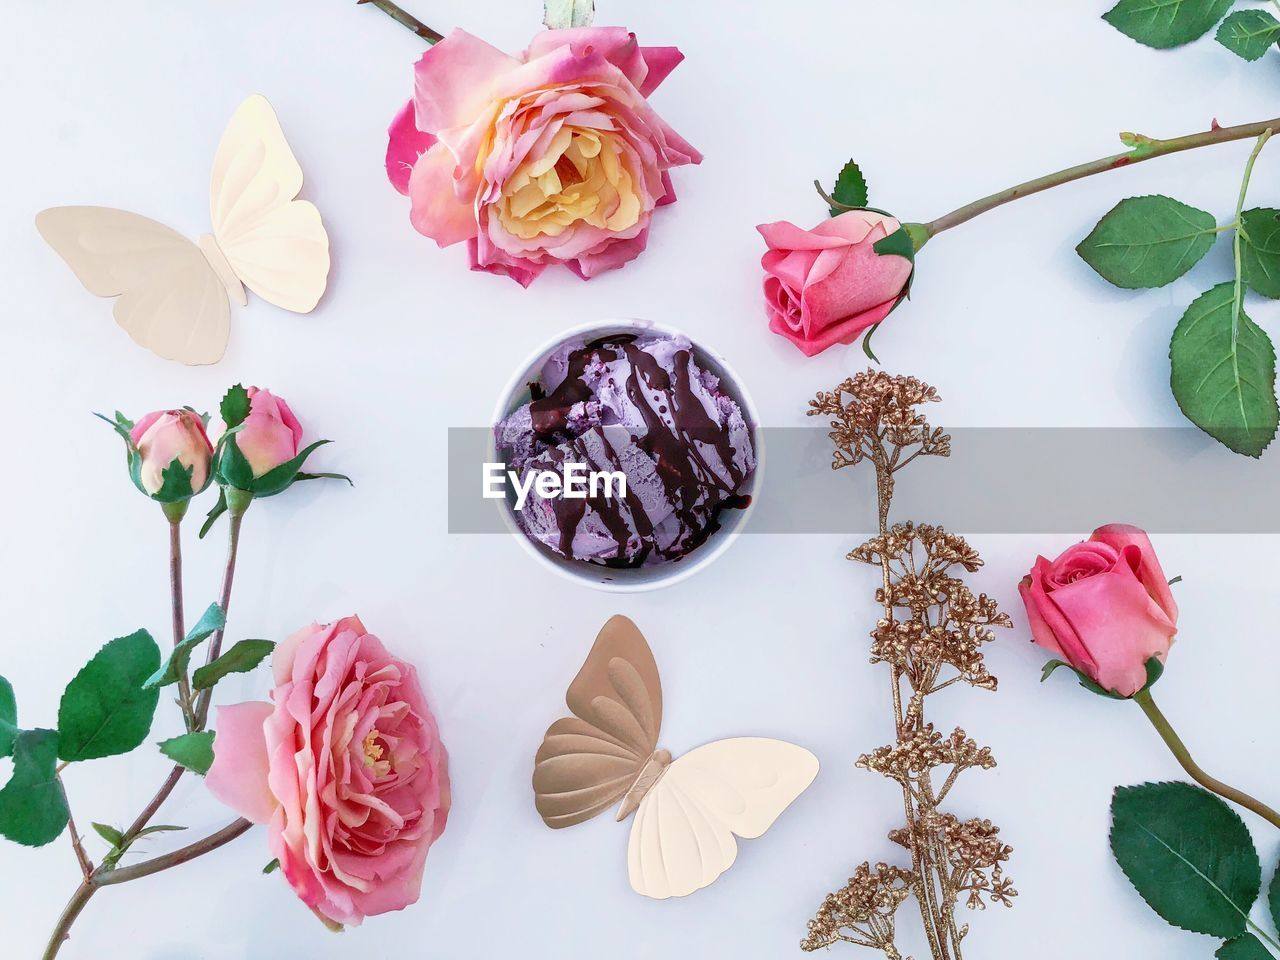 plant, beauty in nature, flower, freshness, flowering plant, vulnerability, rose, fragility, pink color, petal, nature, rose - flower, indoors, no people, close-up, table, still life, leaf, plant part, high angle view, flower head